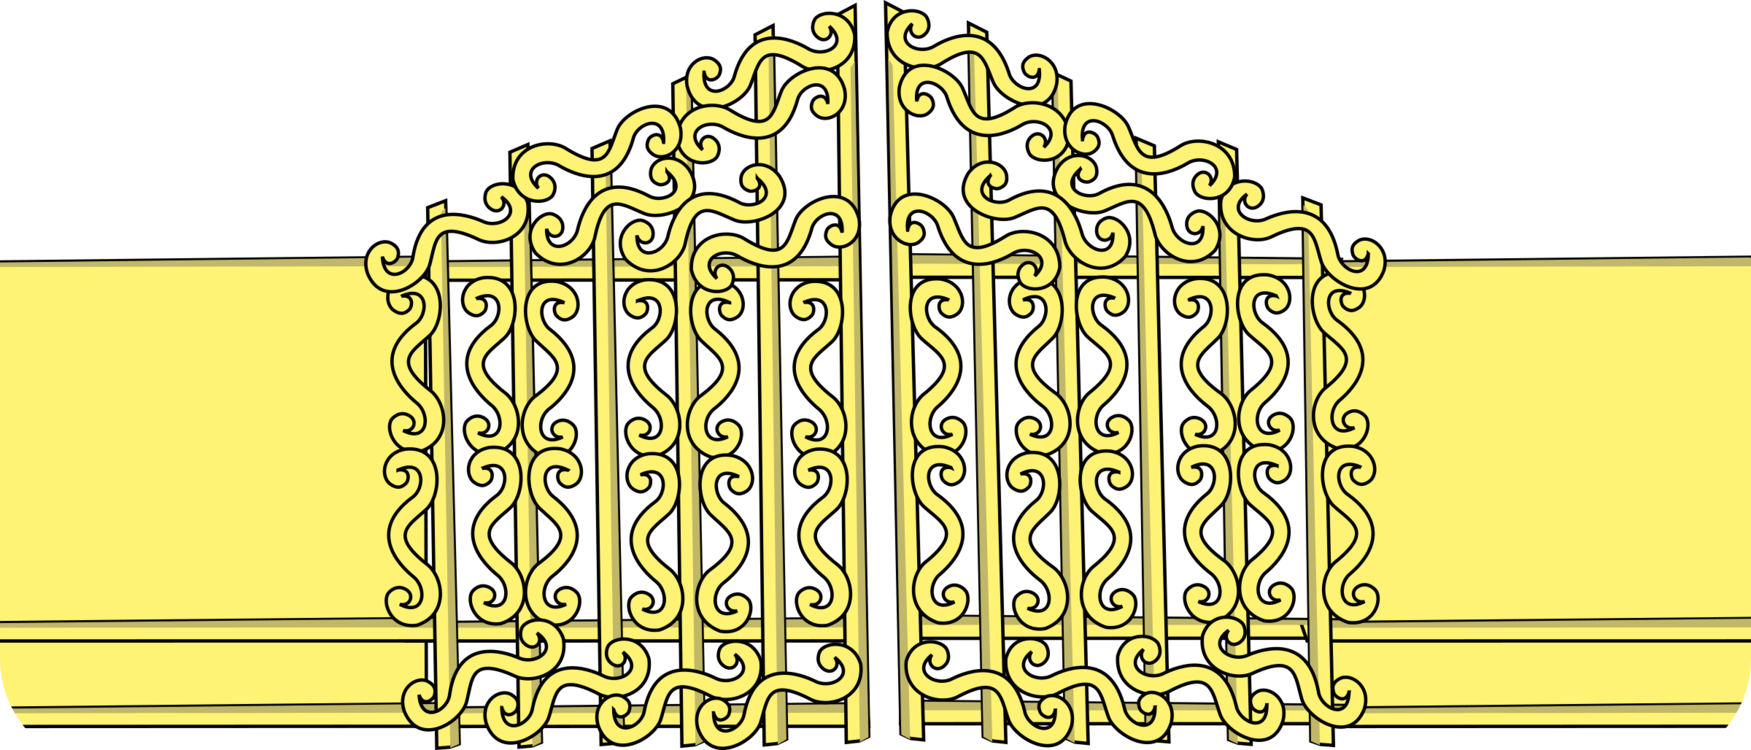 Pearly gates computer icons. Heaven clipart vector download